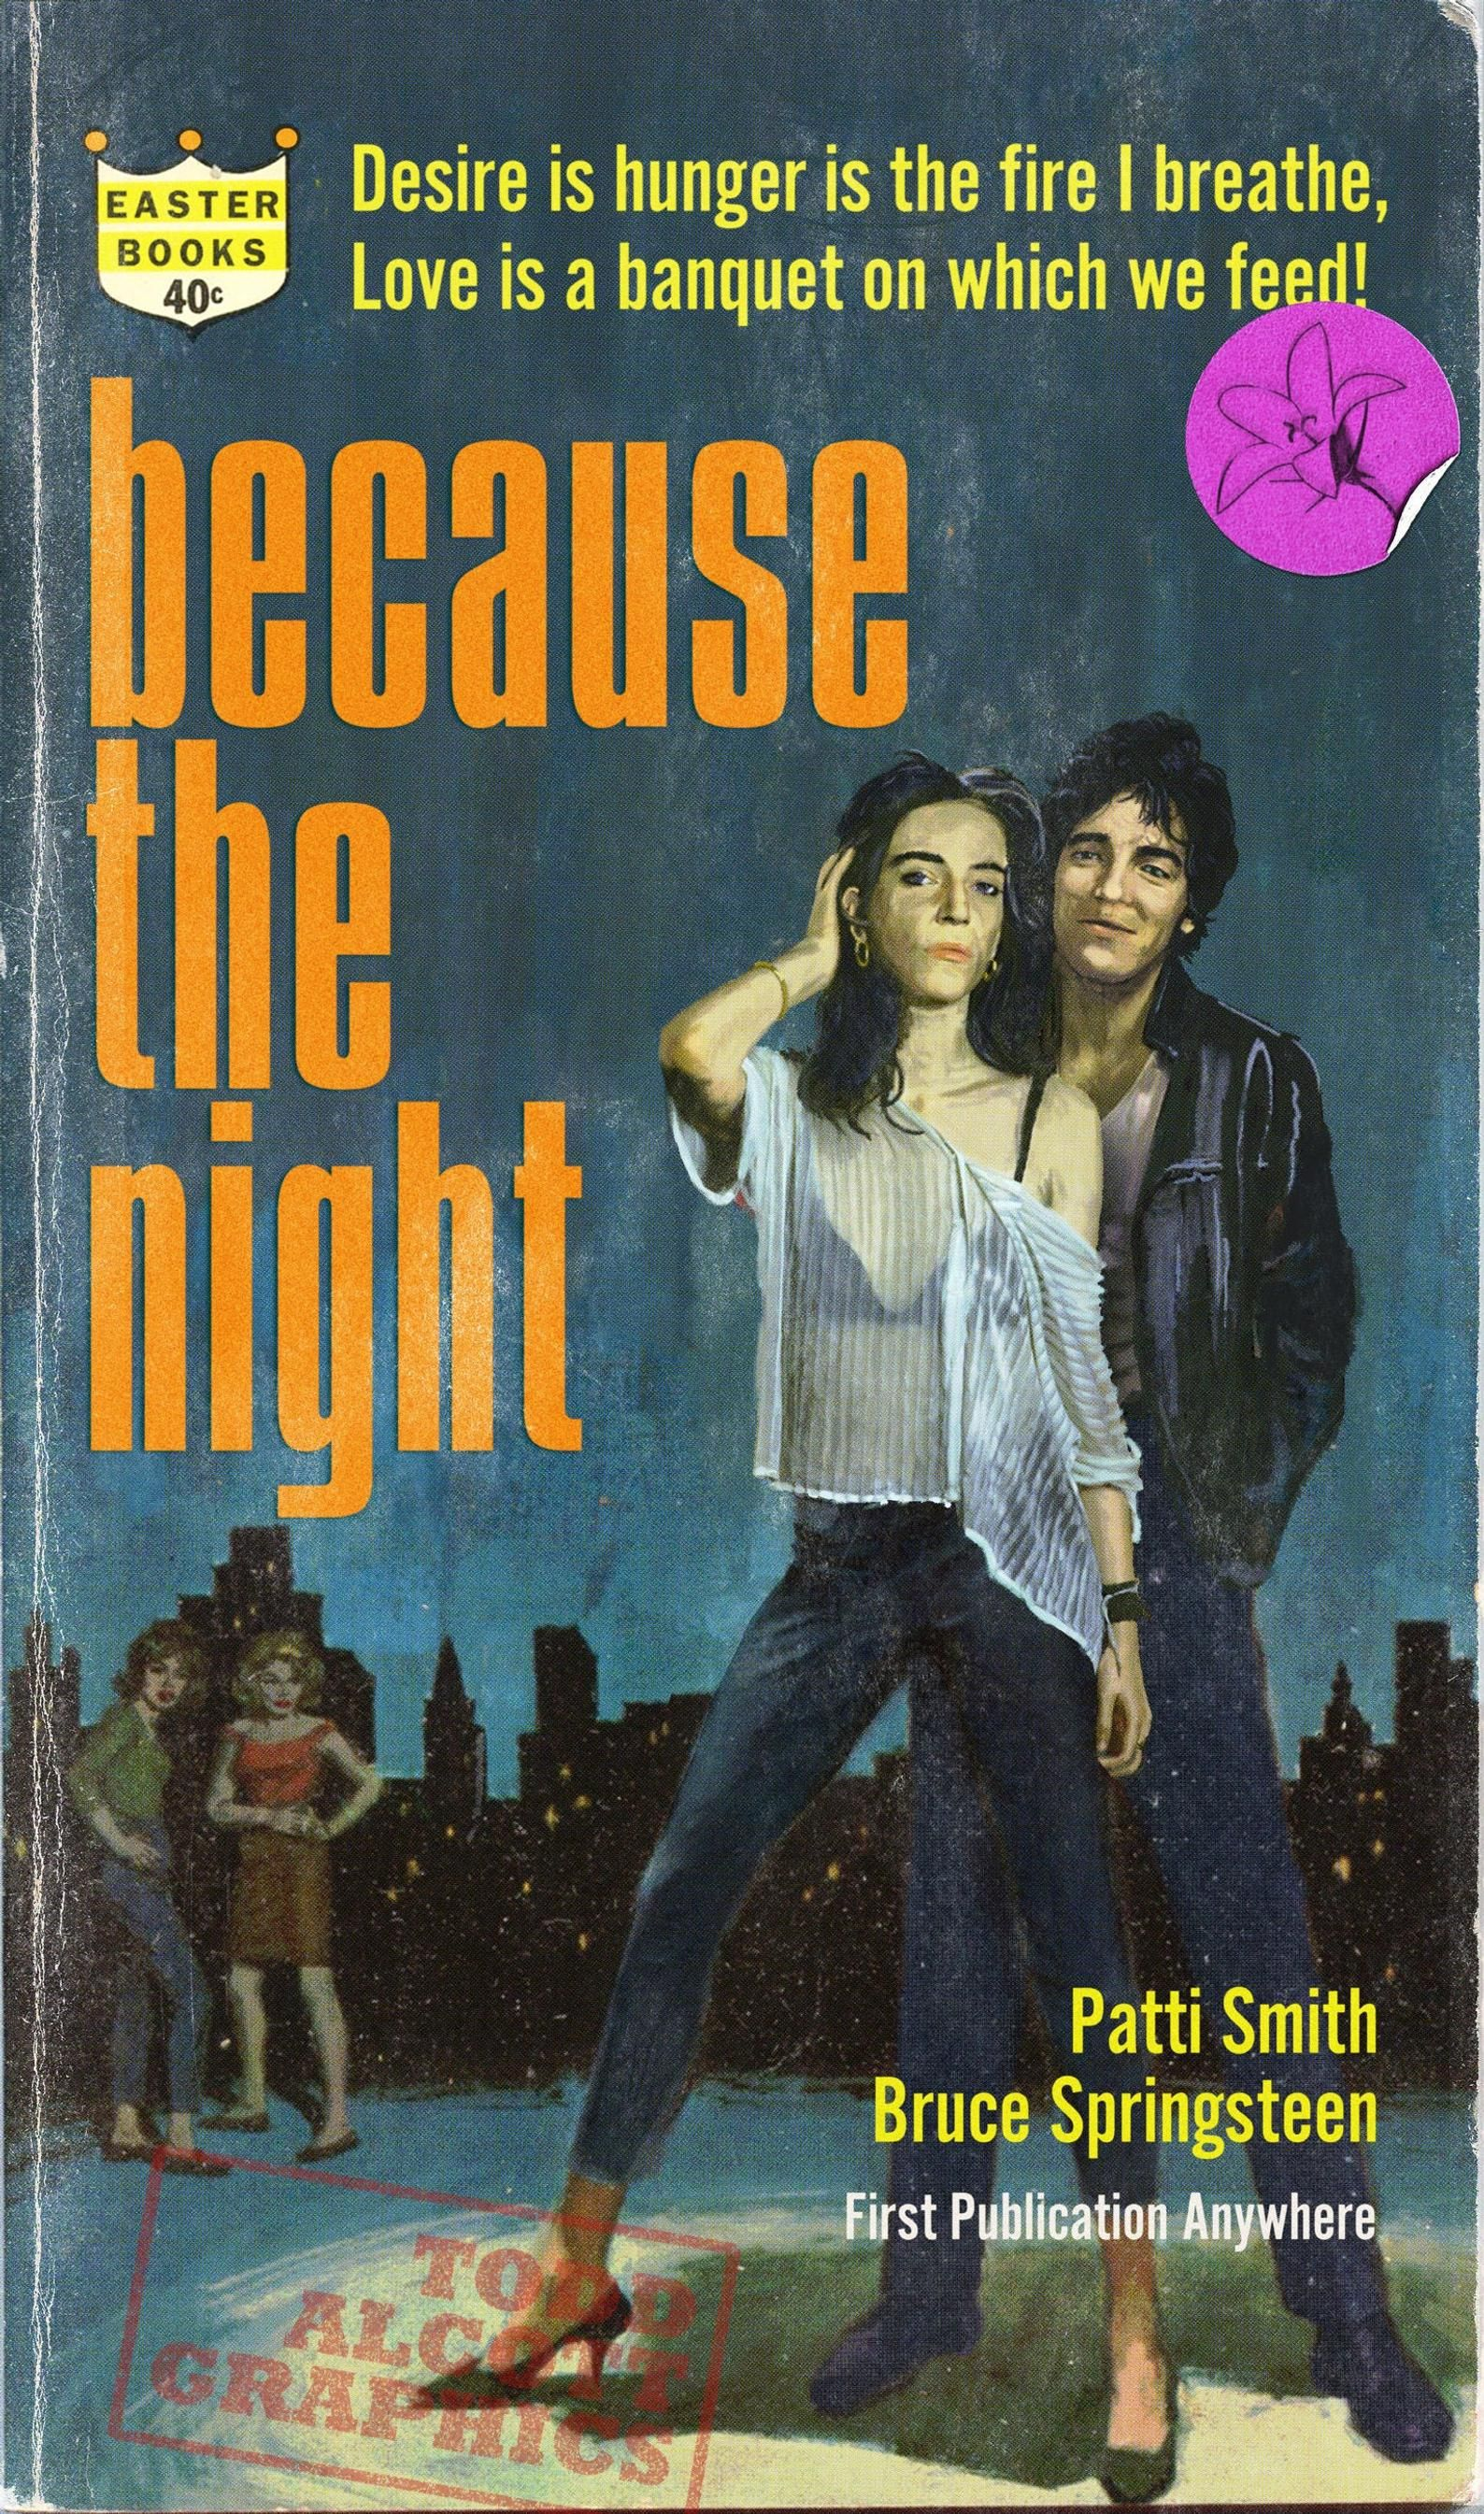 Patti Smith - Bruce Springsteen Because the Night Juvenile Delinquent Pulp Novel Mashup Art Print